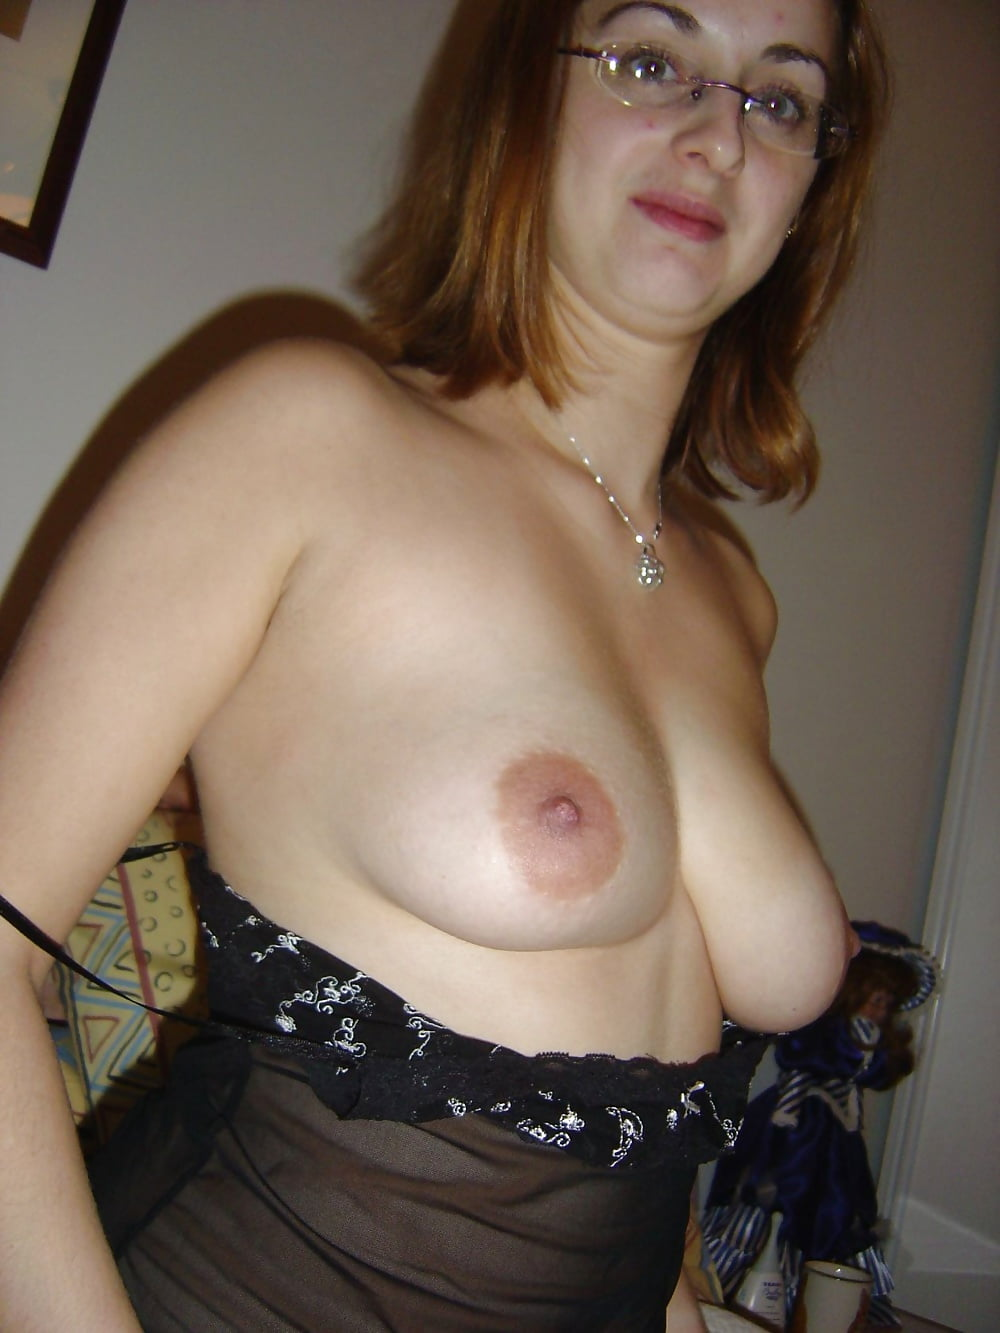 Chubby Mature French Milf Celine 3 - 53 Pics  Xhamster-7062